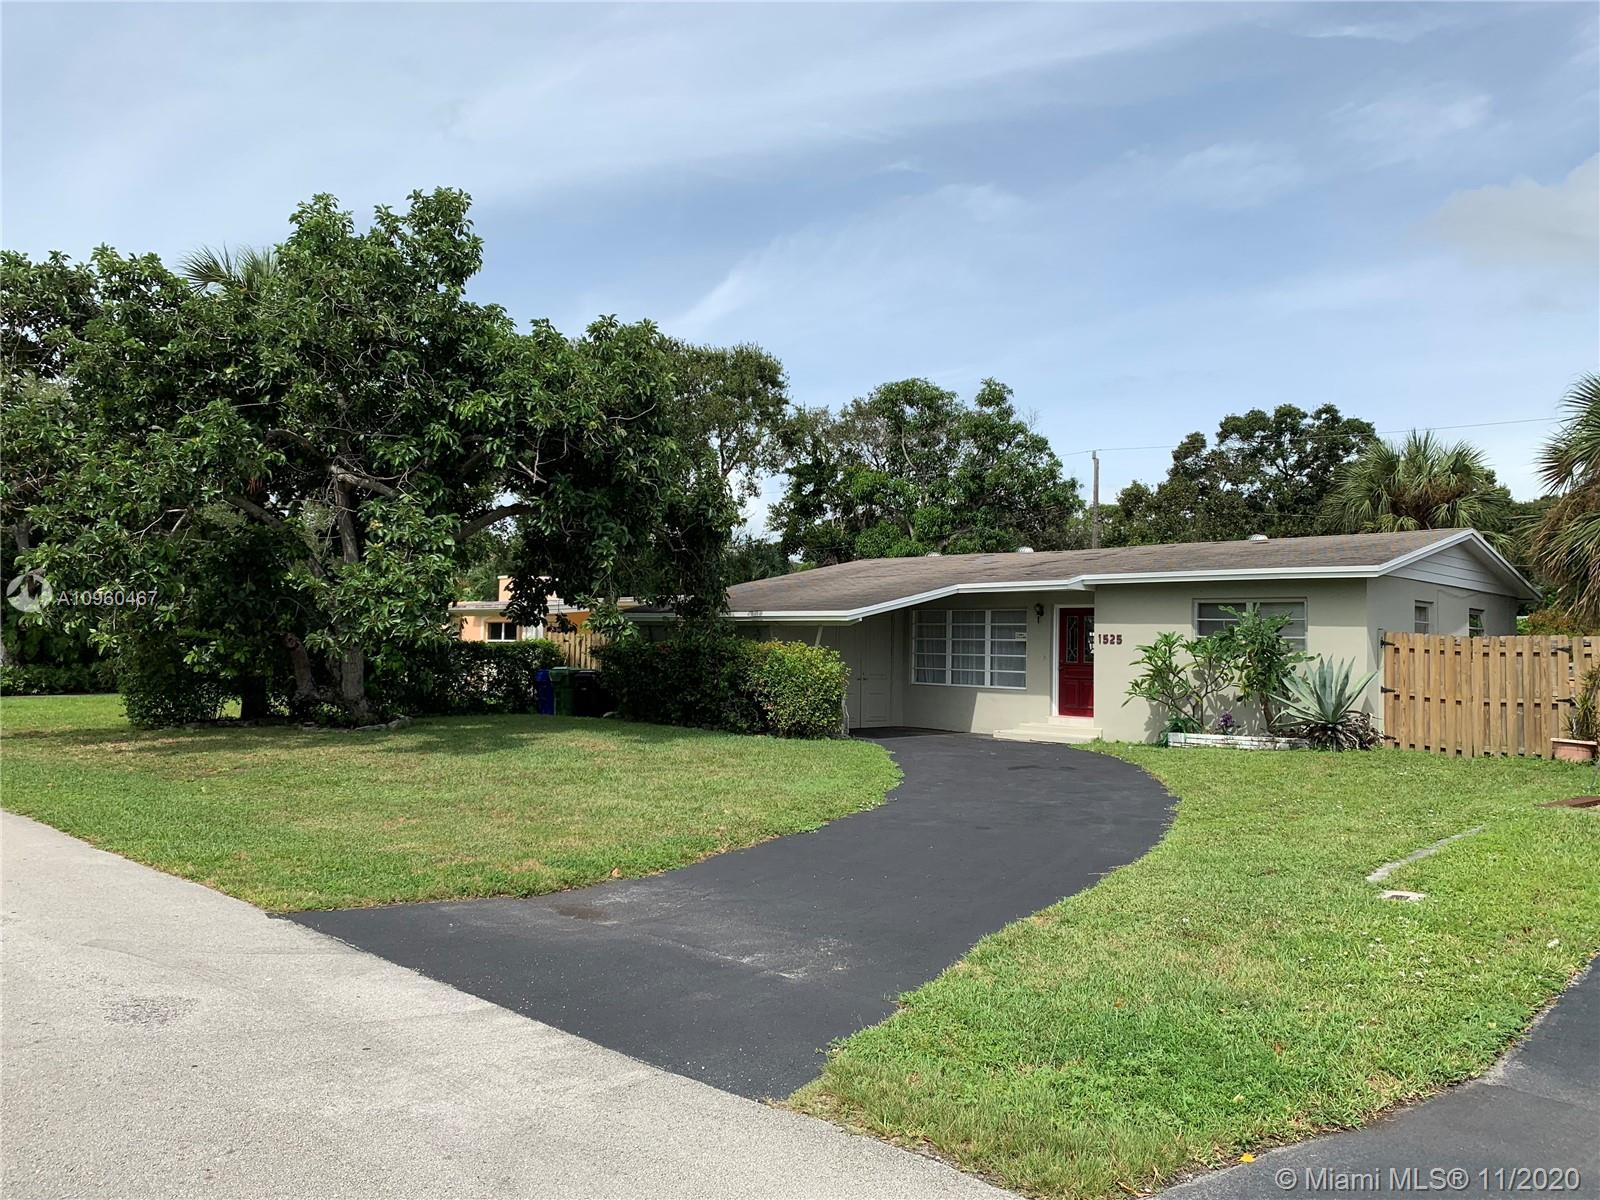 Spacious 3/2 home located in the desirable and private Shady Banks neighborhood. Large lot leaving t